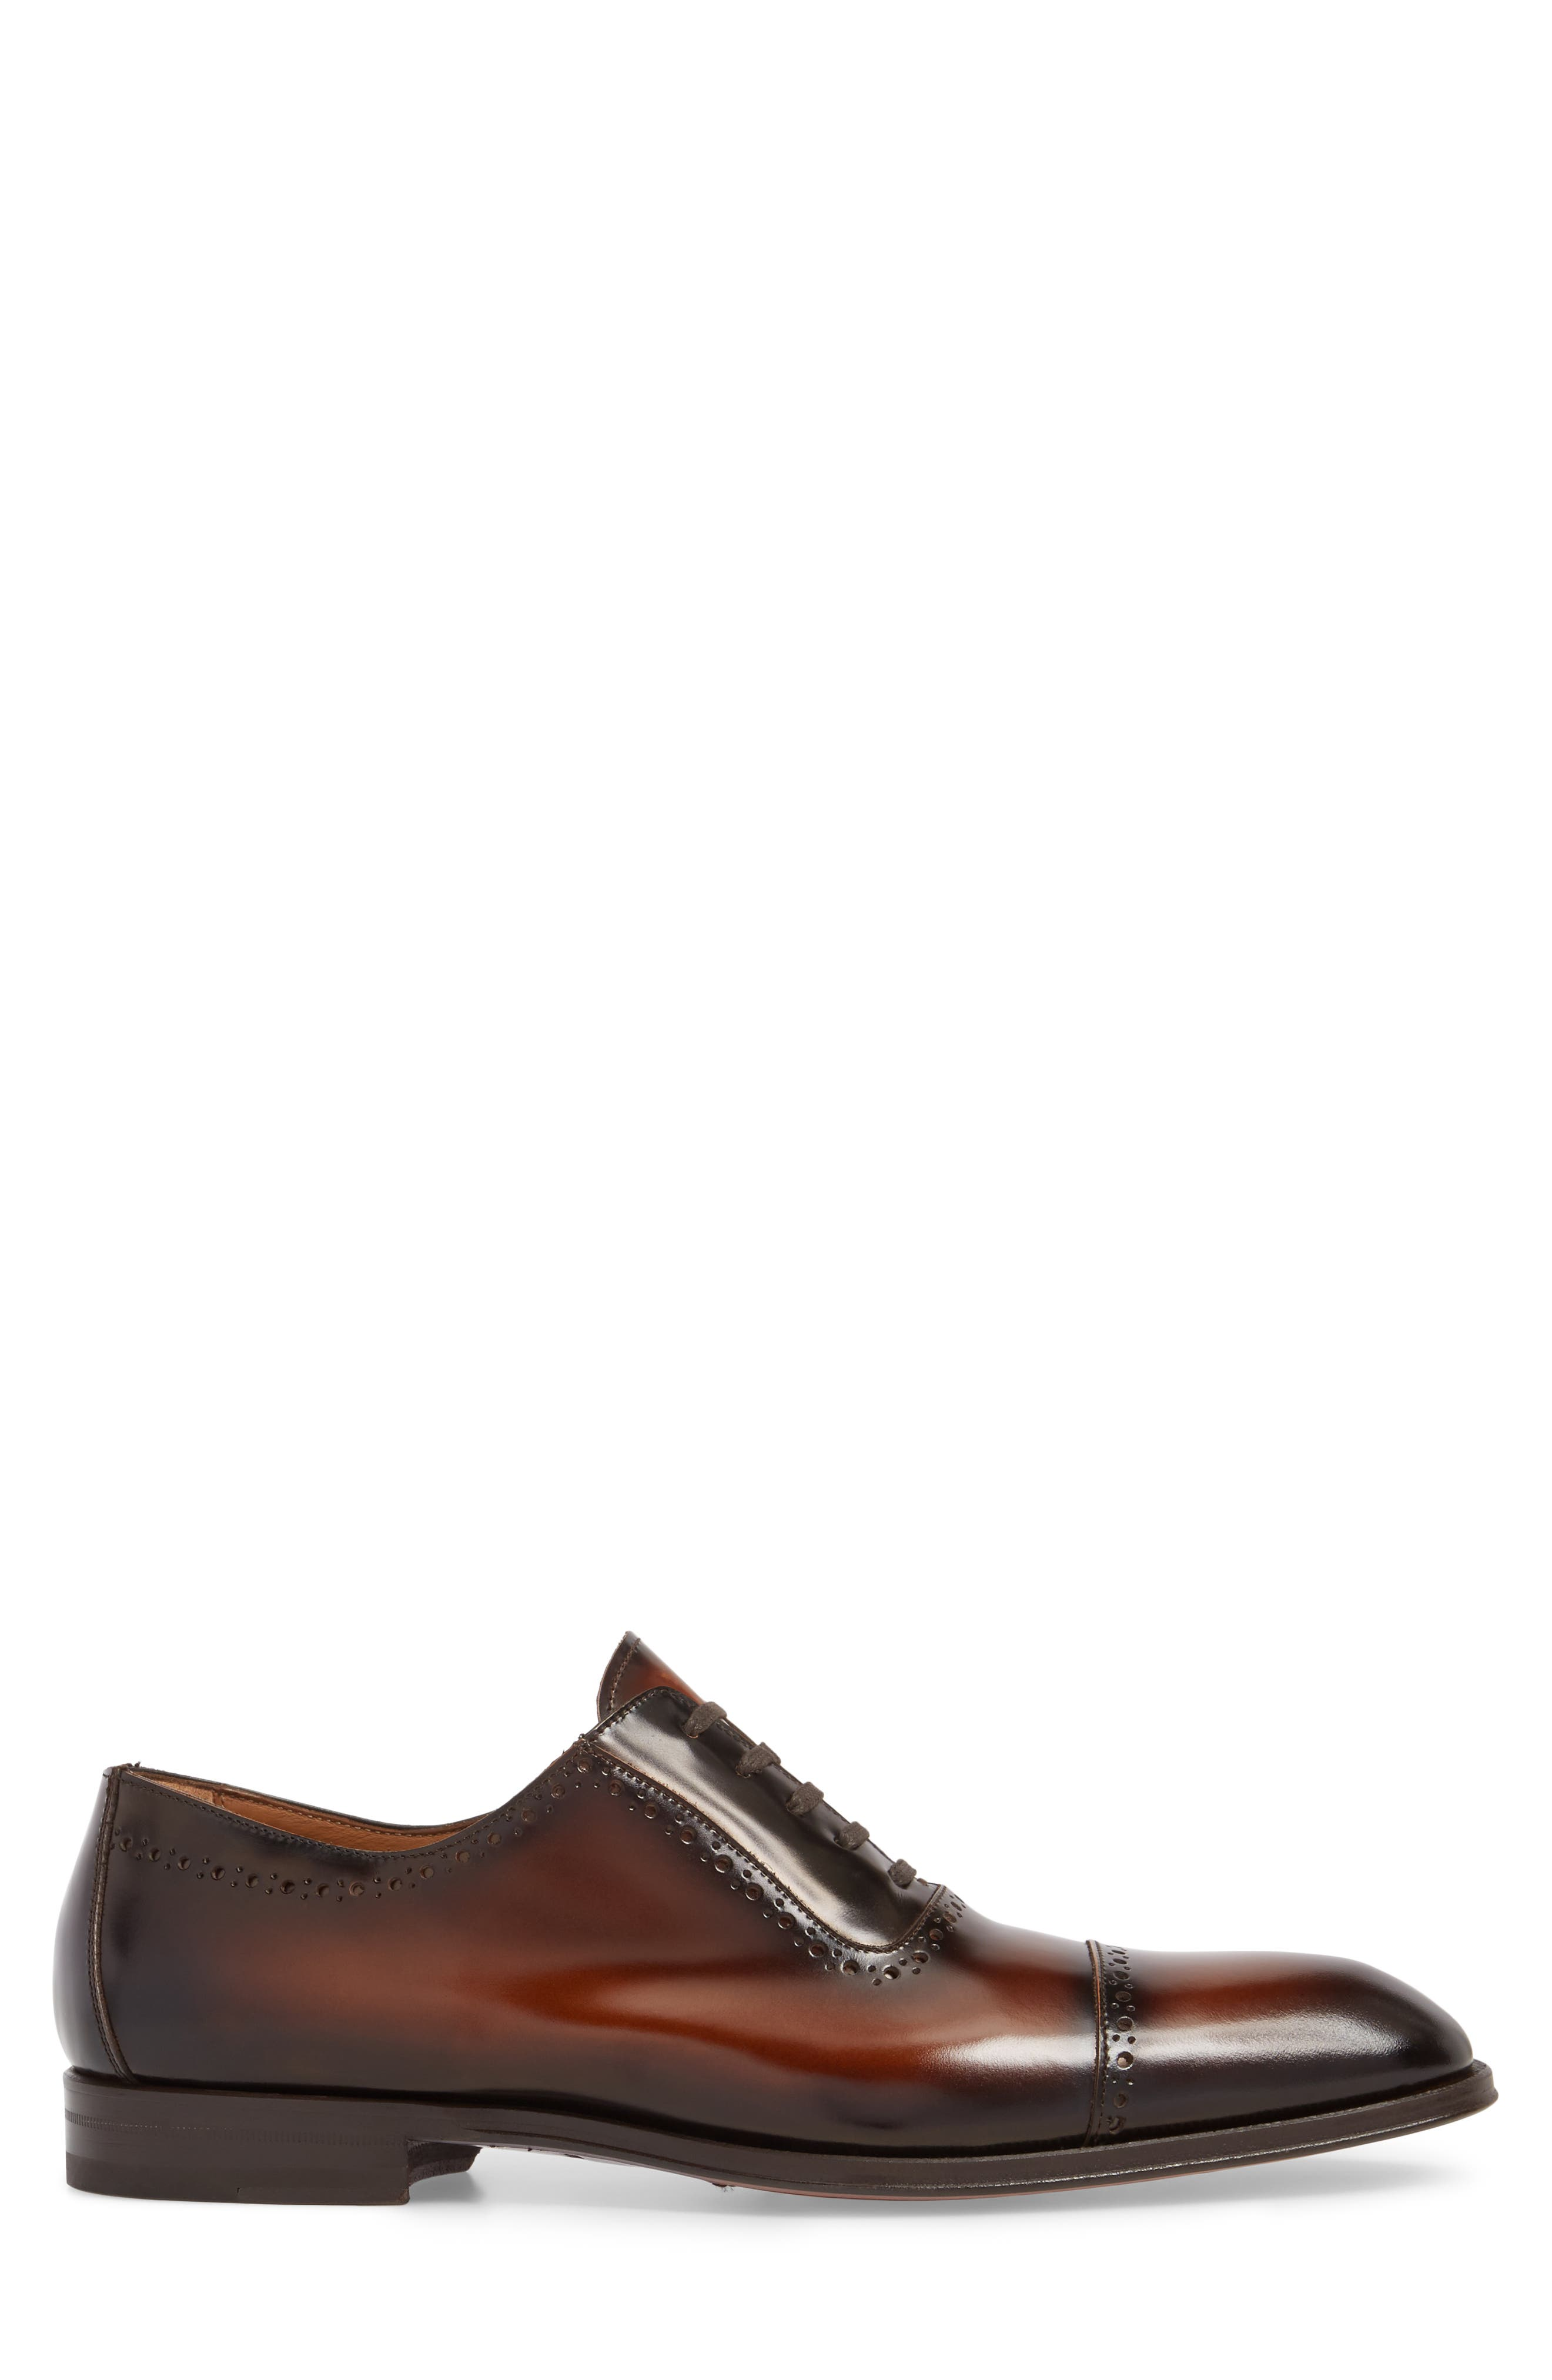 BRUNO MAGLI, Lucca Cap Toe Oxford, Alternate thumbnail 3, color, COGNAC